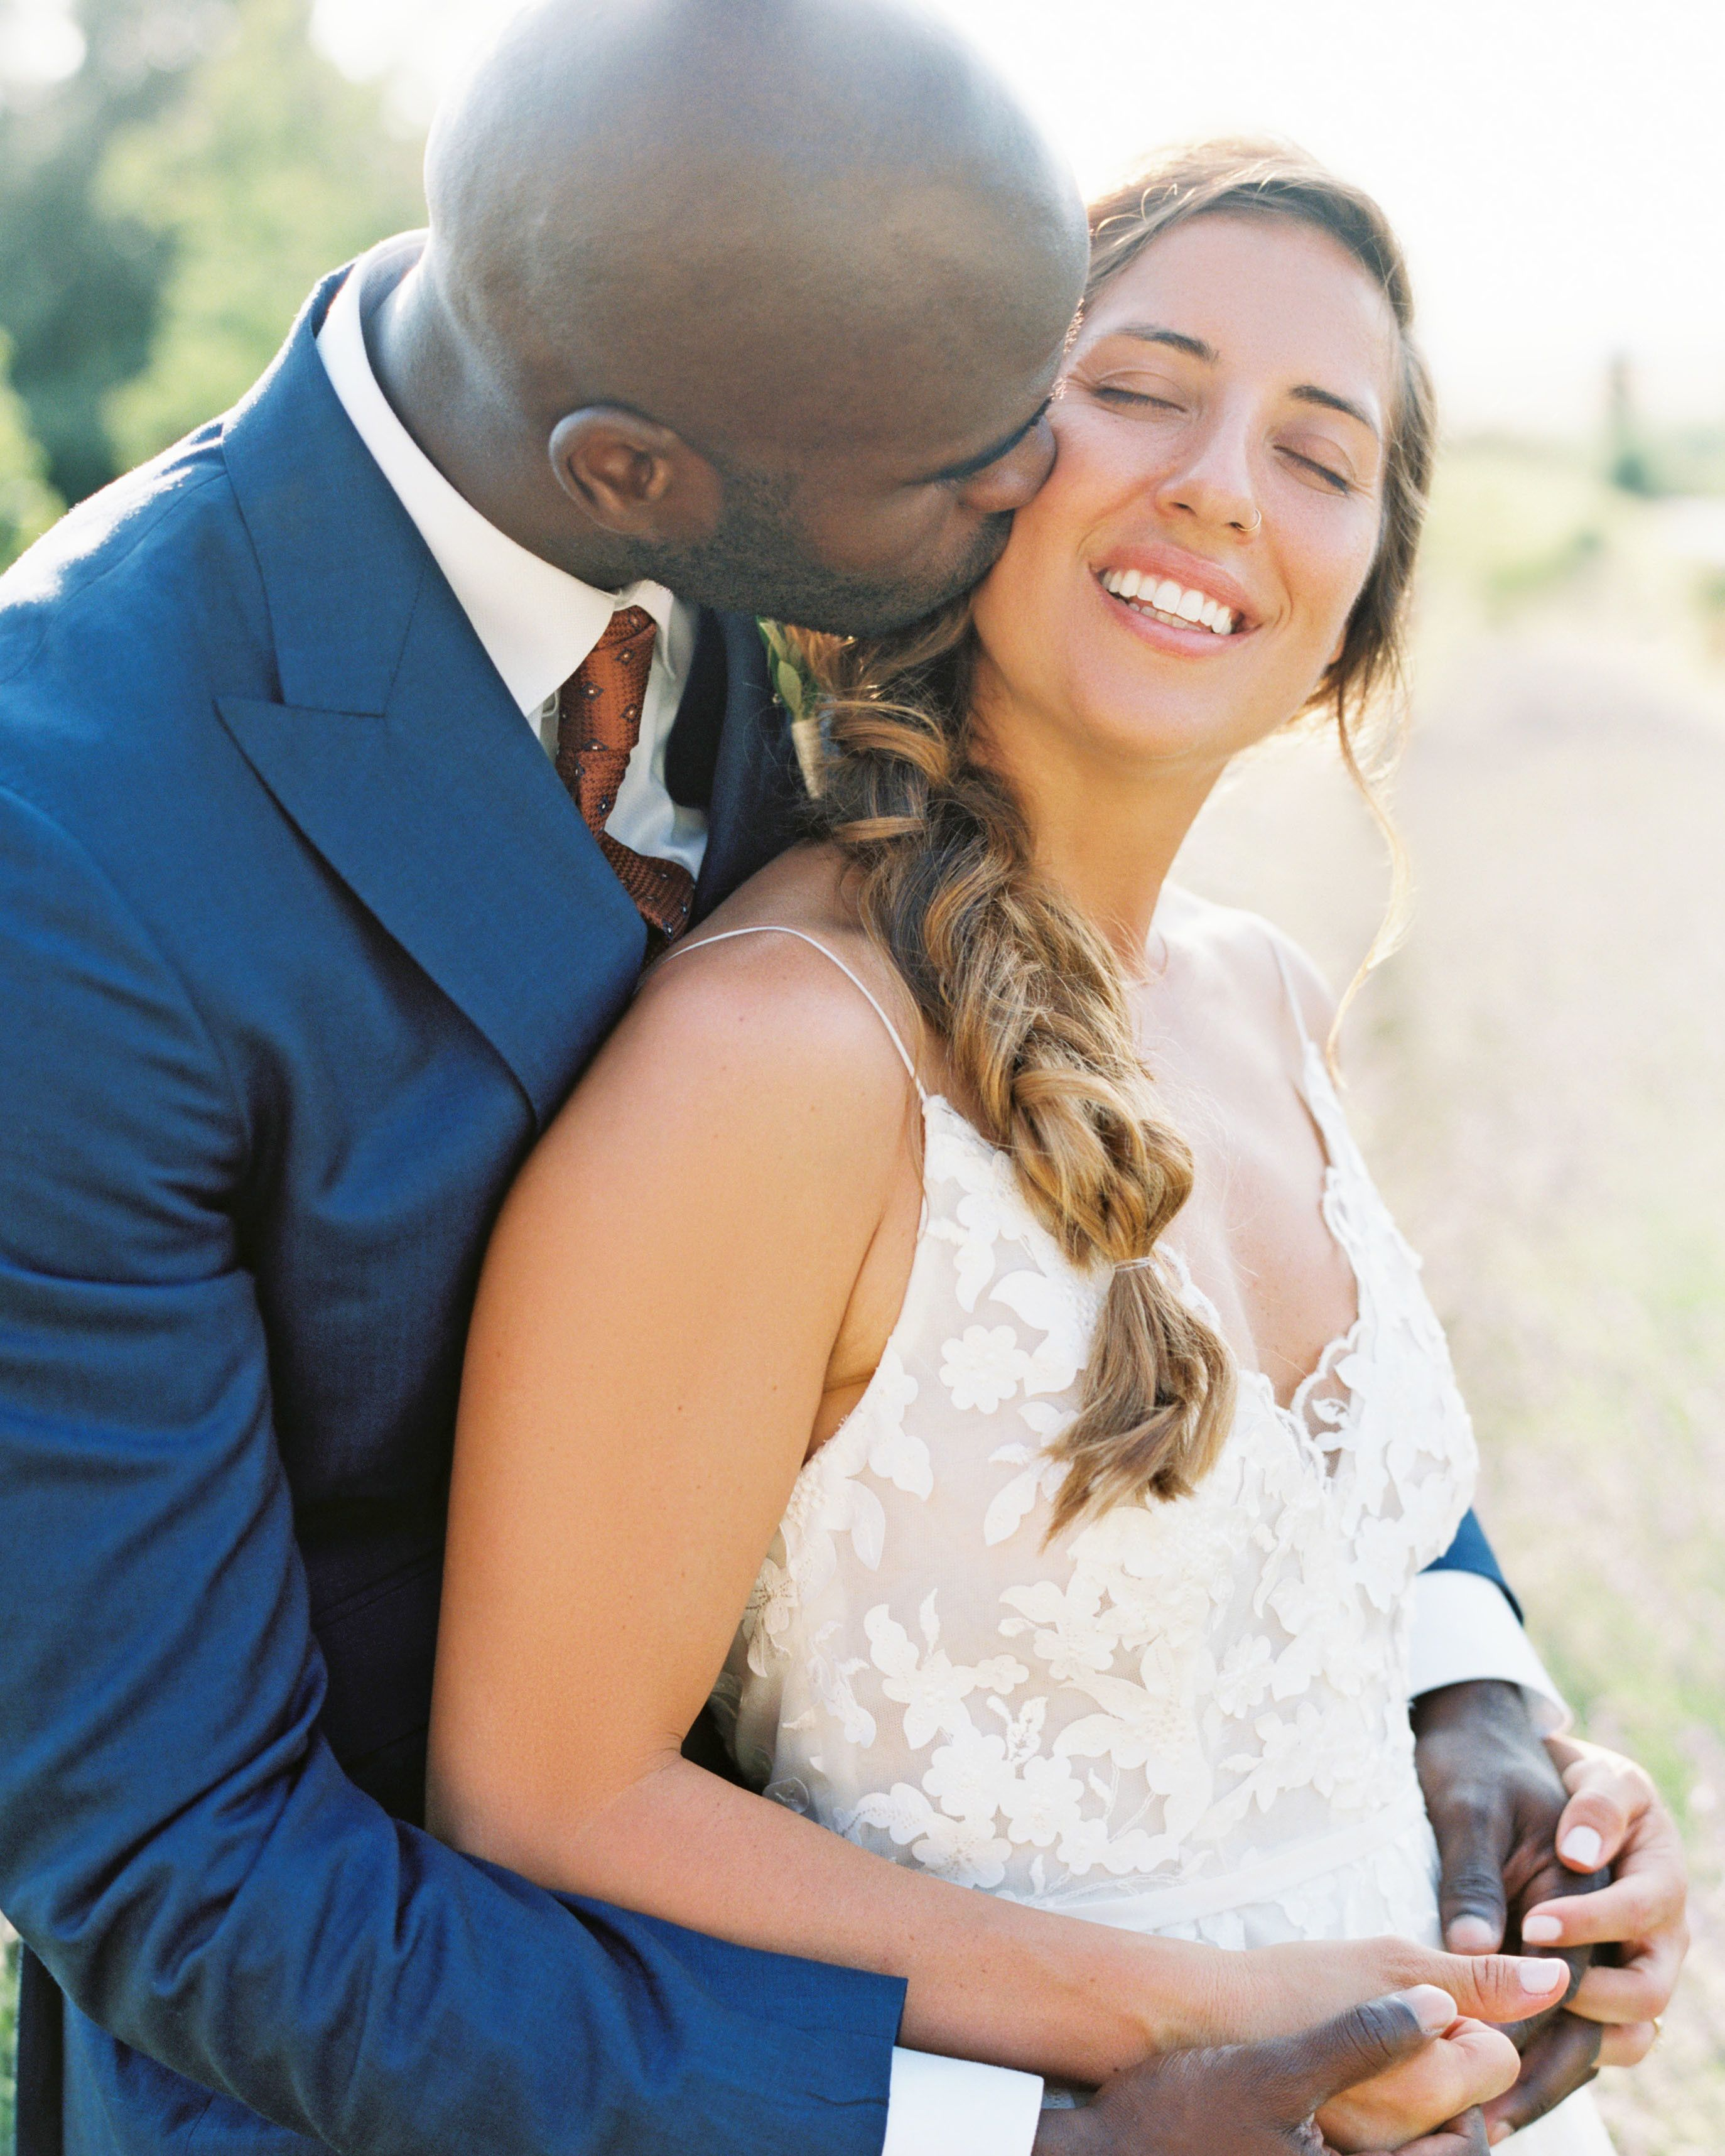 Real Weddings In Tuscany: An Intimate Destination Wedding In Tuscany With Just 36